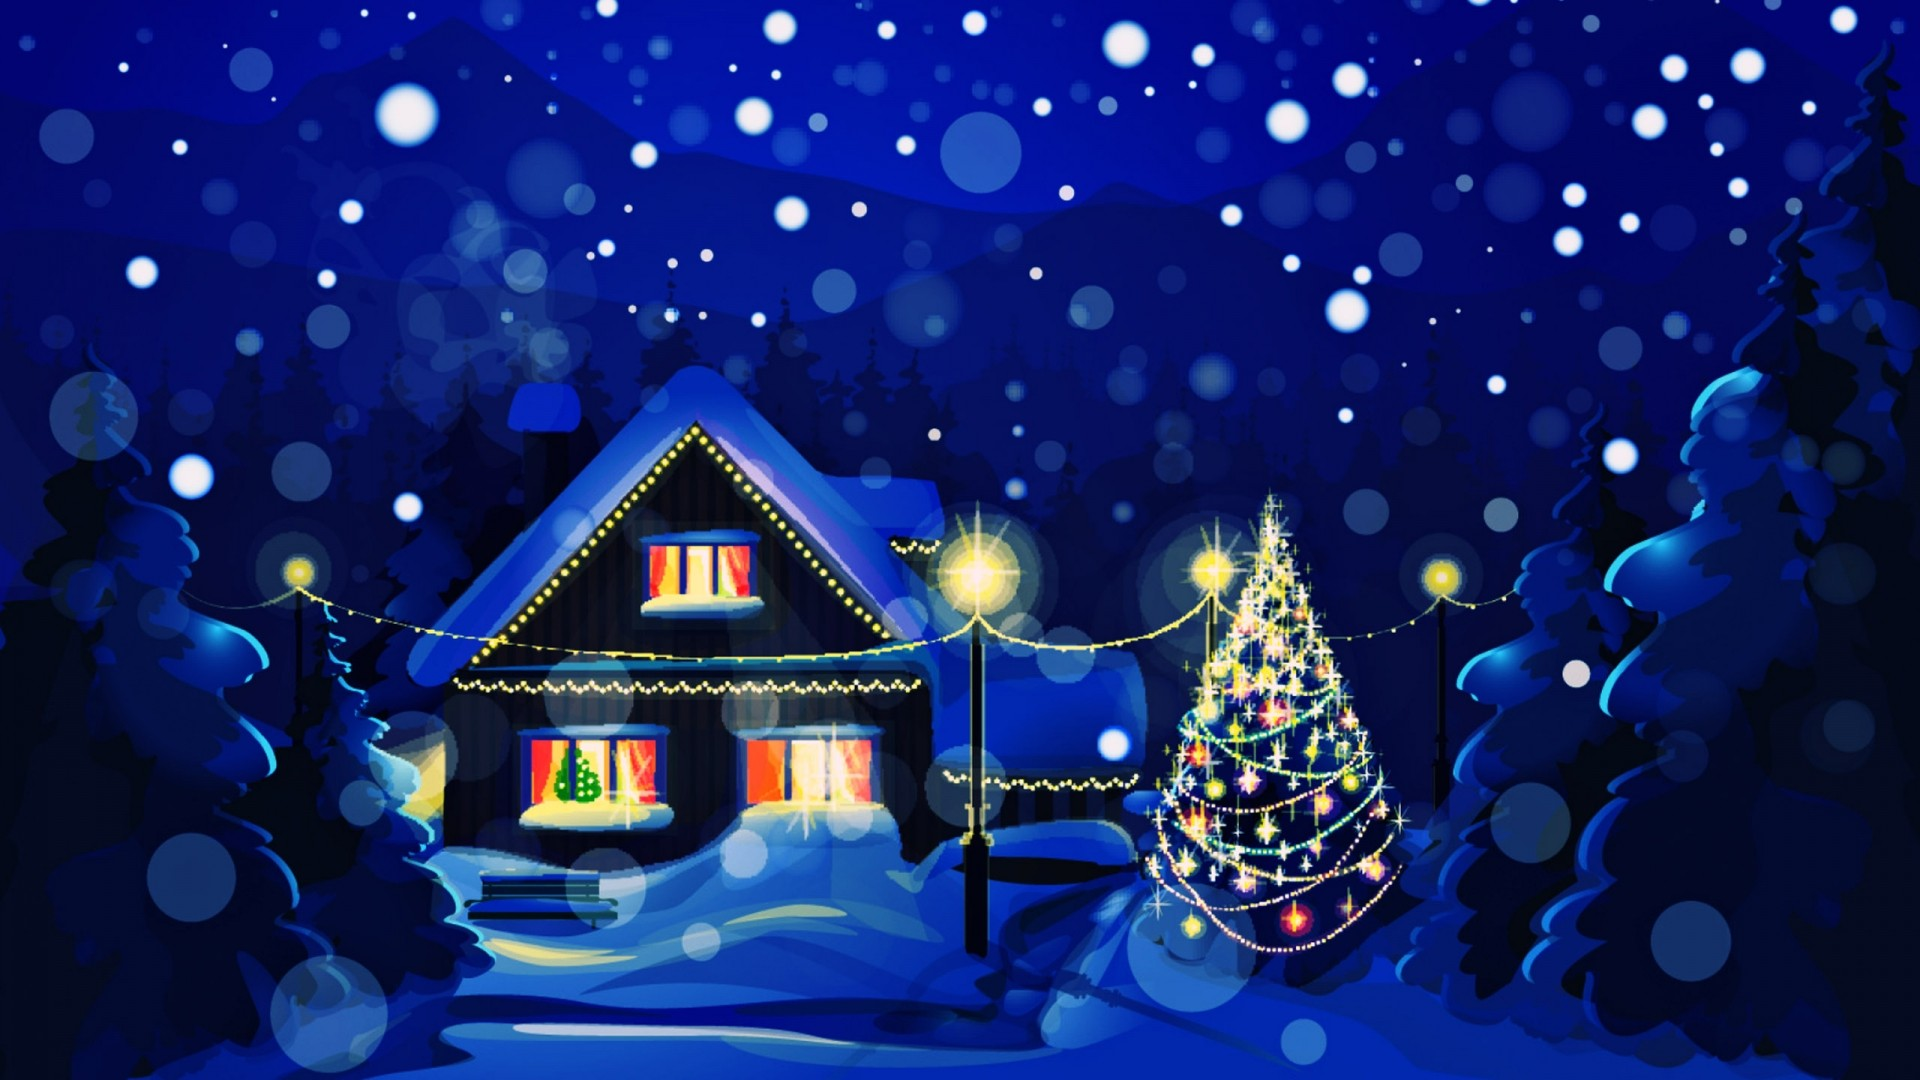 Live Winter Snow Fall Background Wallpaper Christmas Hd Wallpaper 183 ① Download Free Wallpapers And